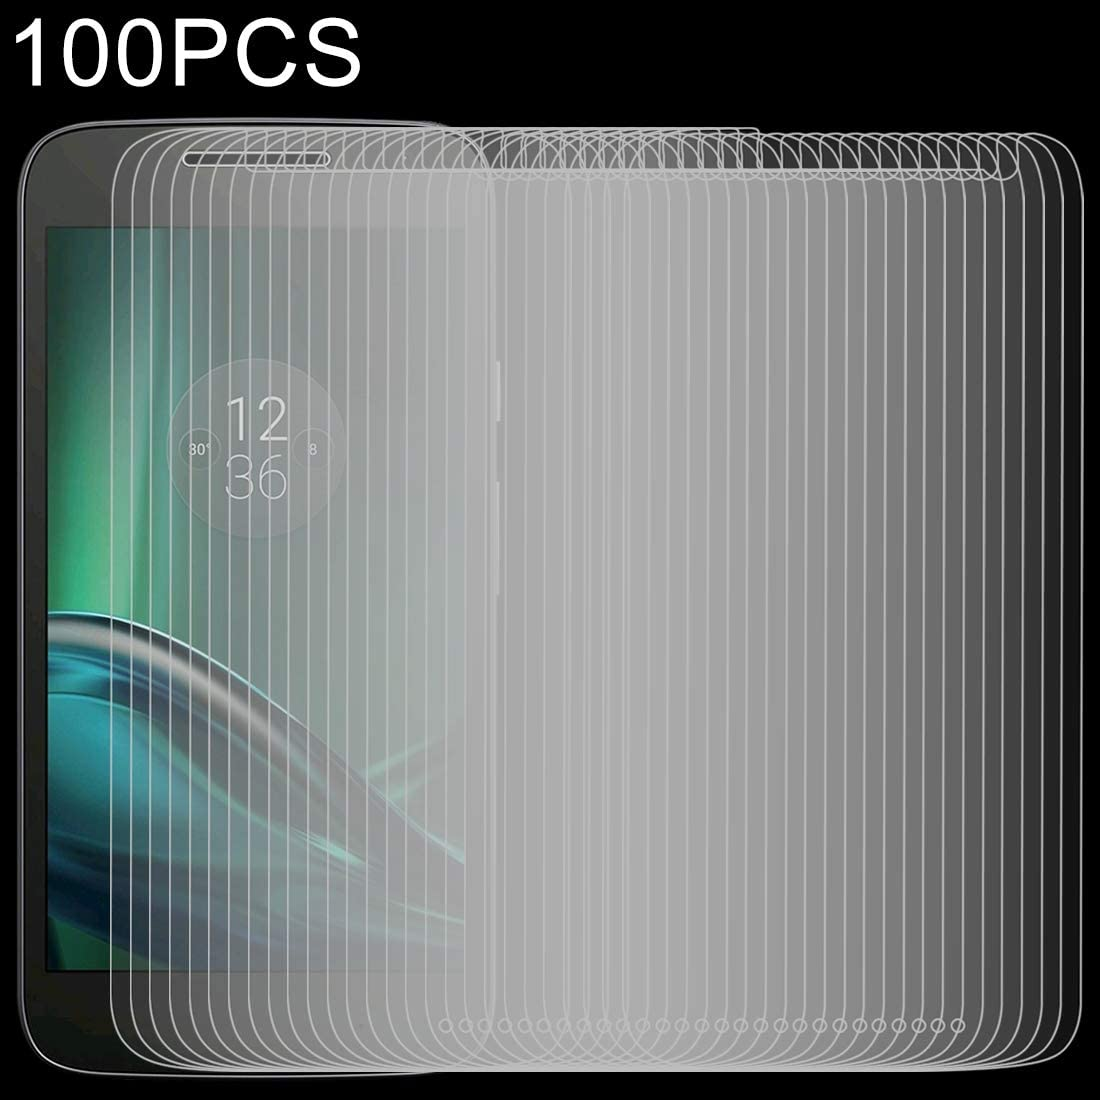 Premium Tempered Glass Screen Film 100 PCS 0.26mm 9H 2.5D Tempered Glass Film for Motorola Moto G4 Play Anti-Scratch Screen Protector